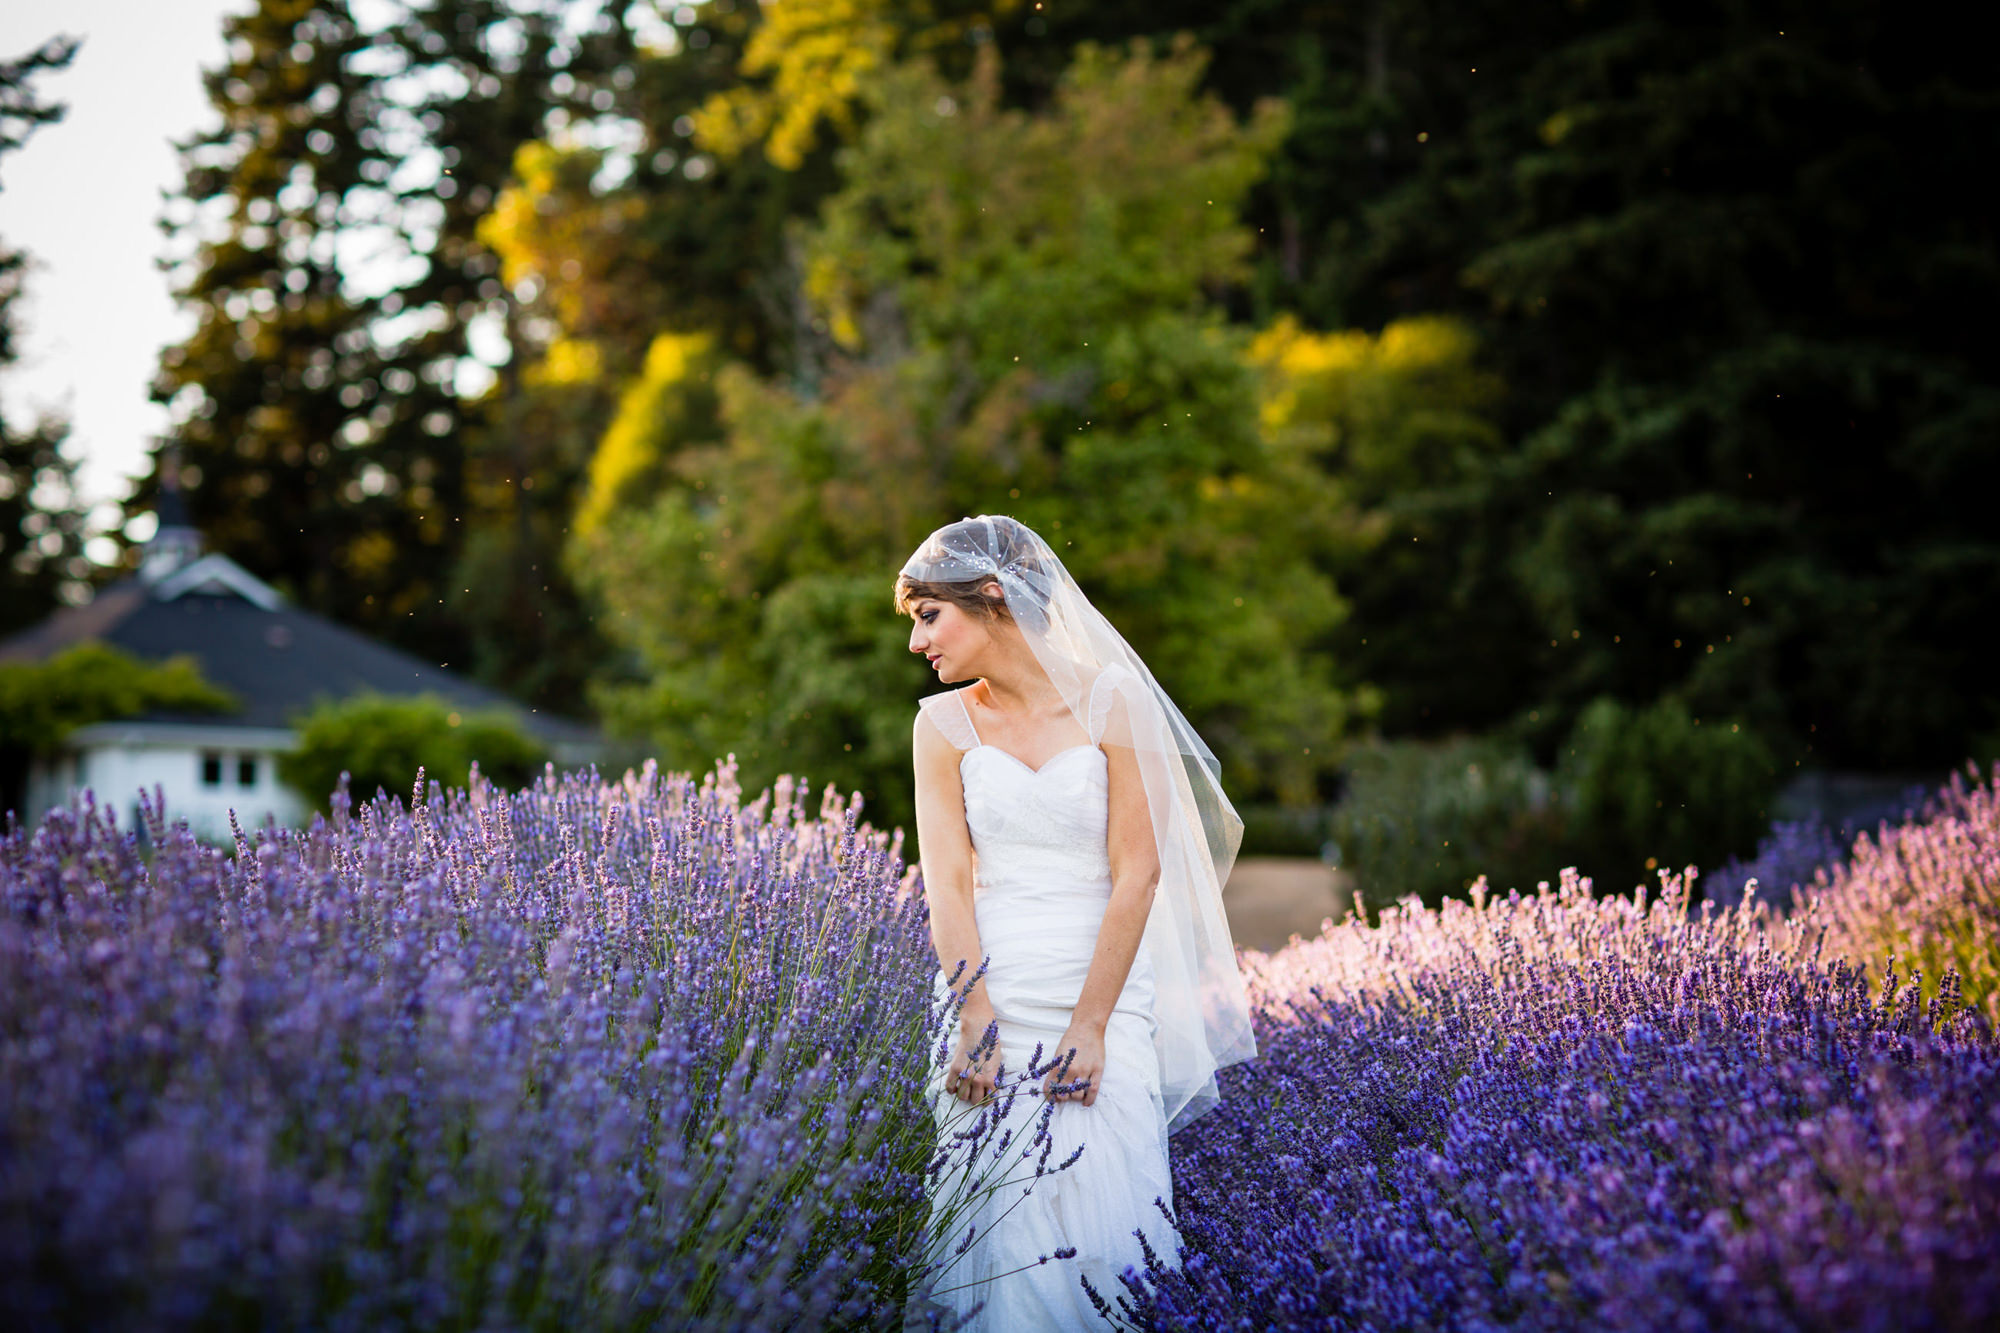 Bride in lavendar field in evening light - La Vie Photography